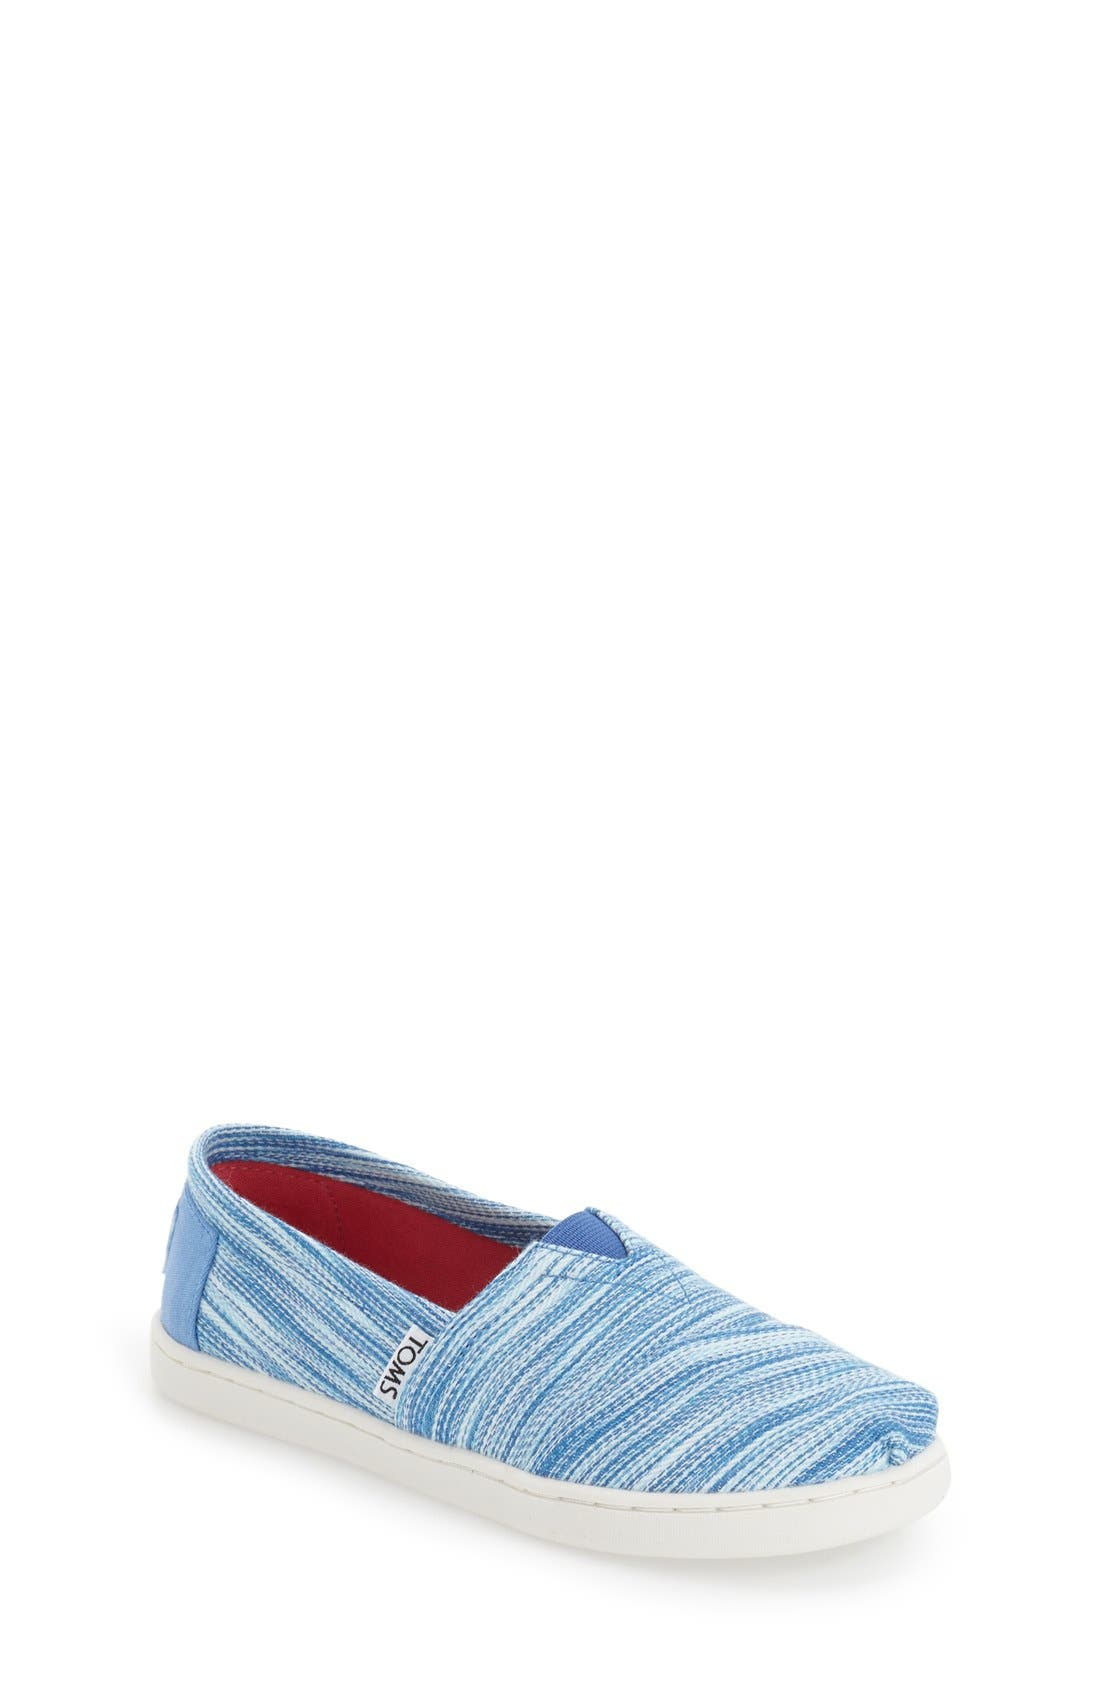 TOMS 'Classic - Blue Space Dye' Slip-On (Baby, Walker, Toddler, Little Kid & Big Kid)